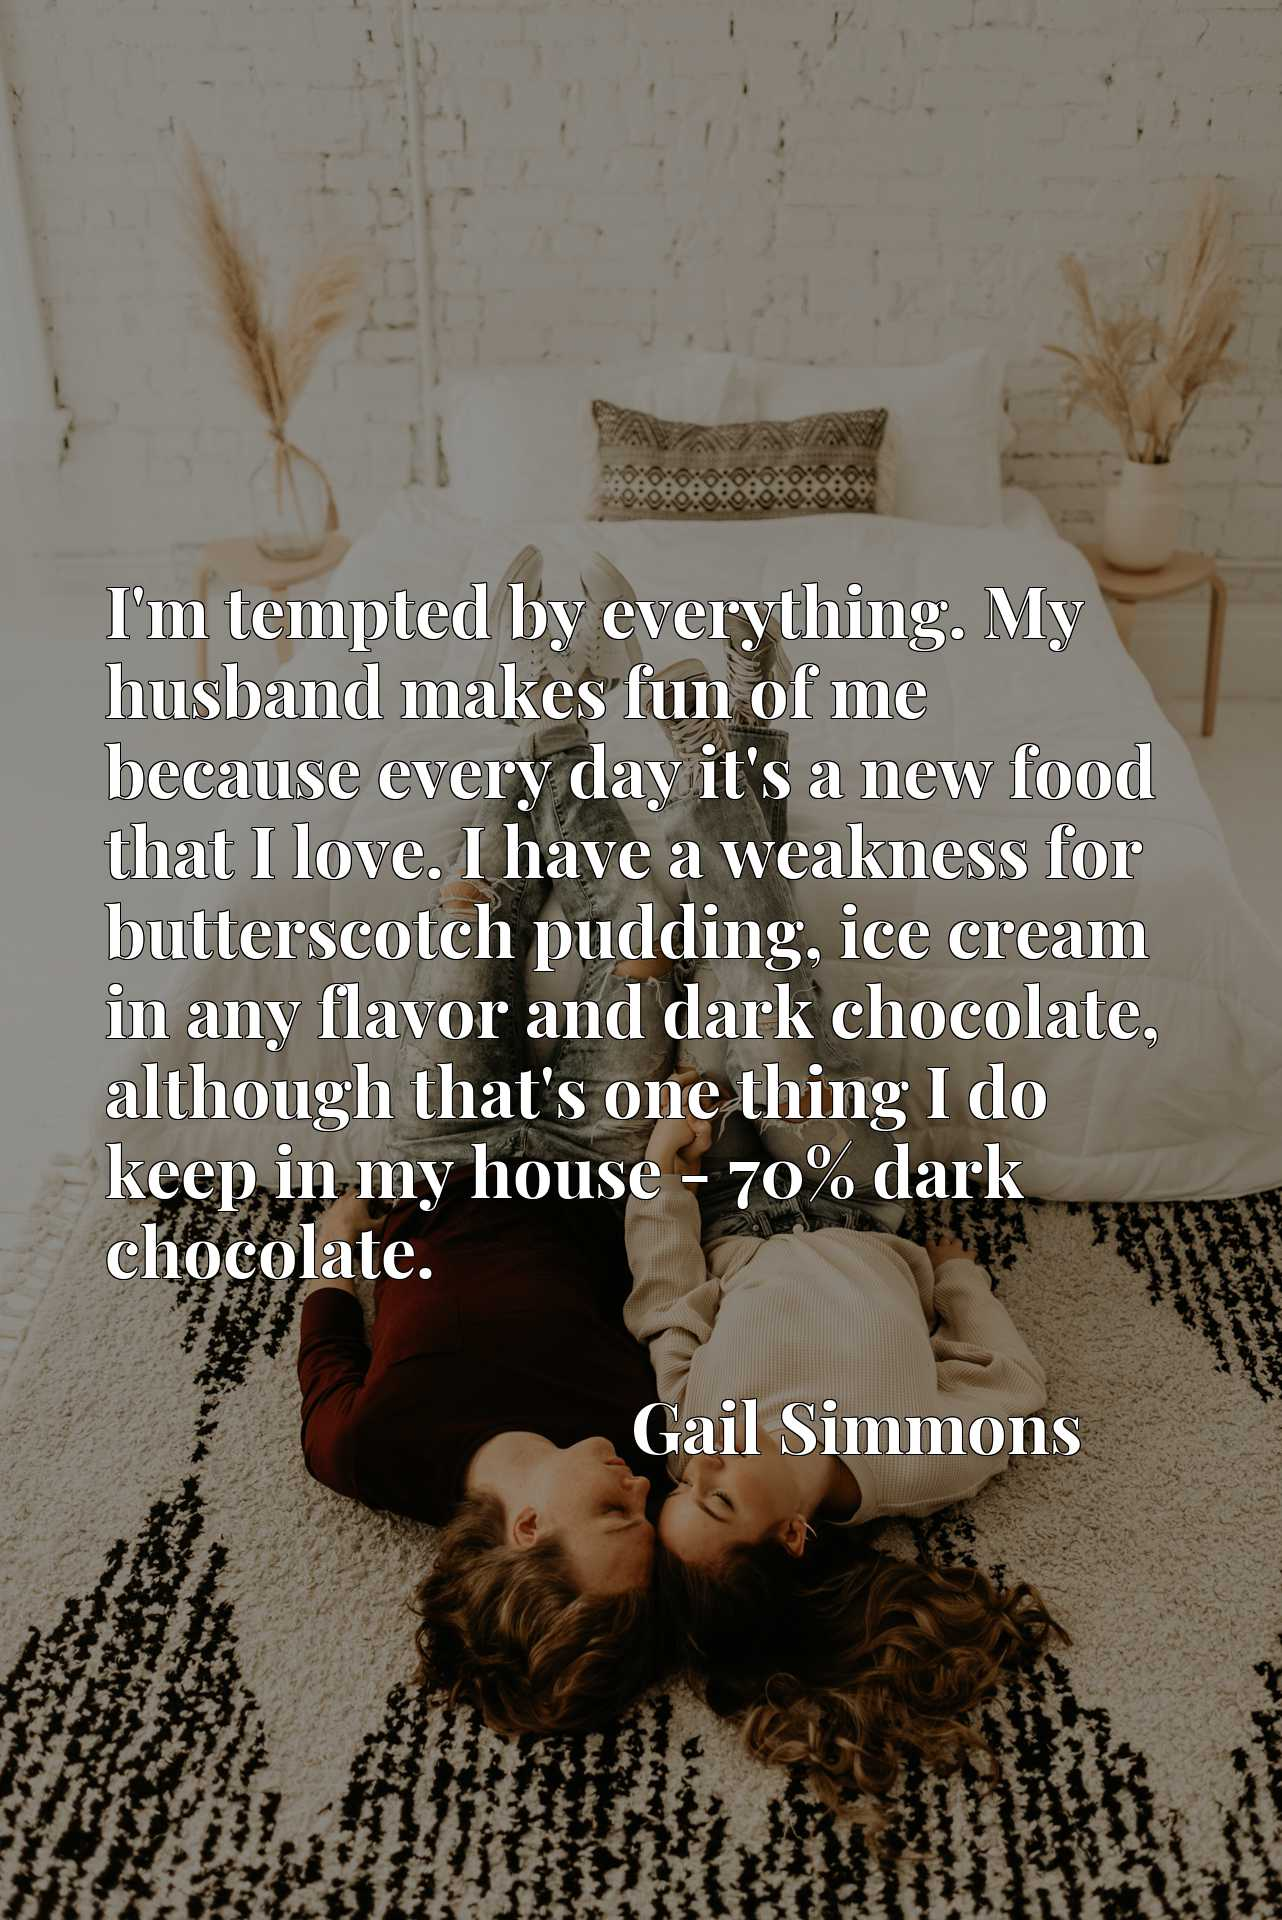 I'm tempted by everything. My husband makes fun of me because every day it's a new food that I love. I have a weakness for butterscotch pudding, ice cream in any flavor and dark chocolate, although that's one thing I do keep in my house - 70% dark chocolate.